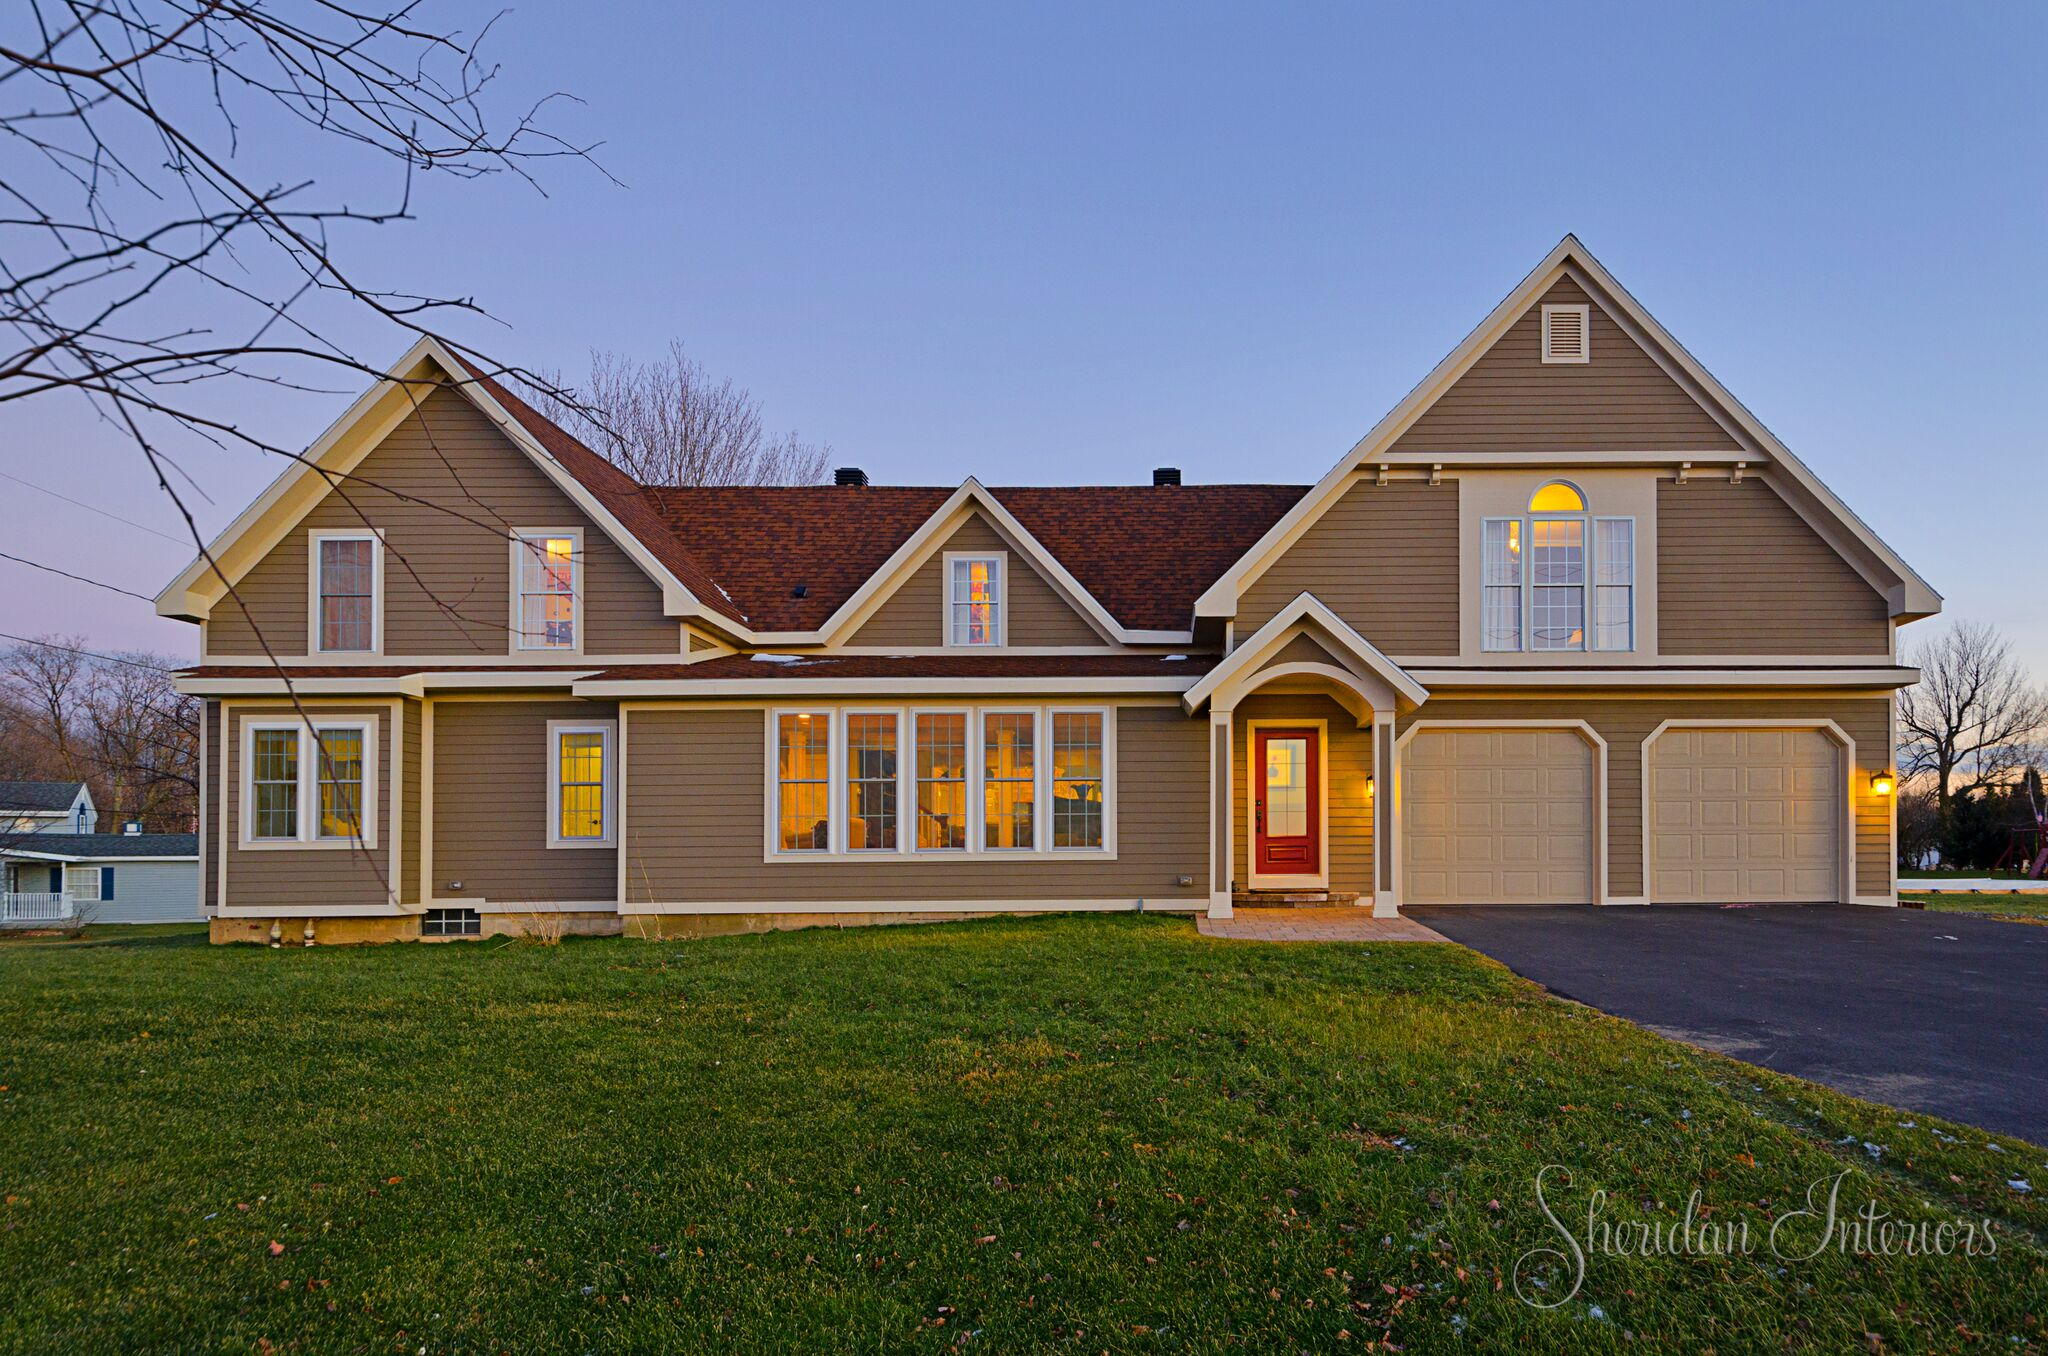 Colonial Style Home Exterior View - Sheridan Interiors